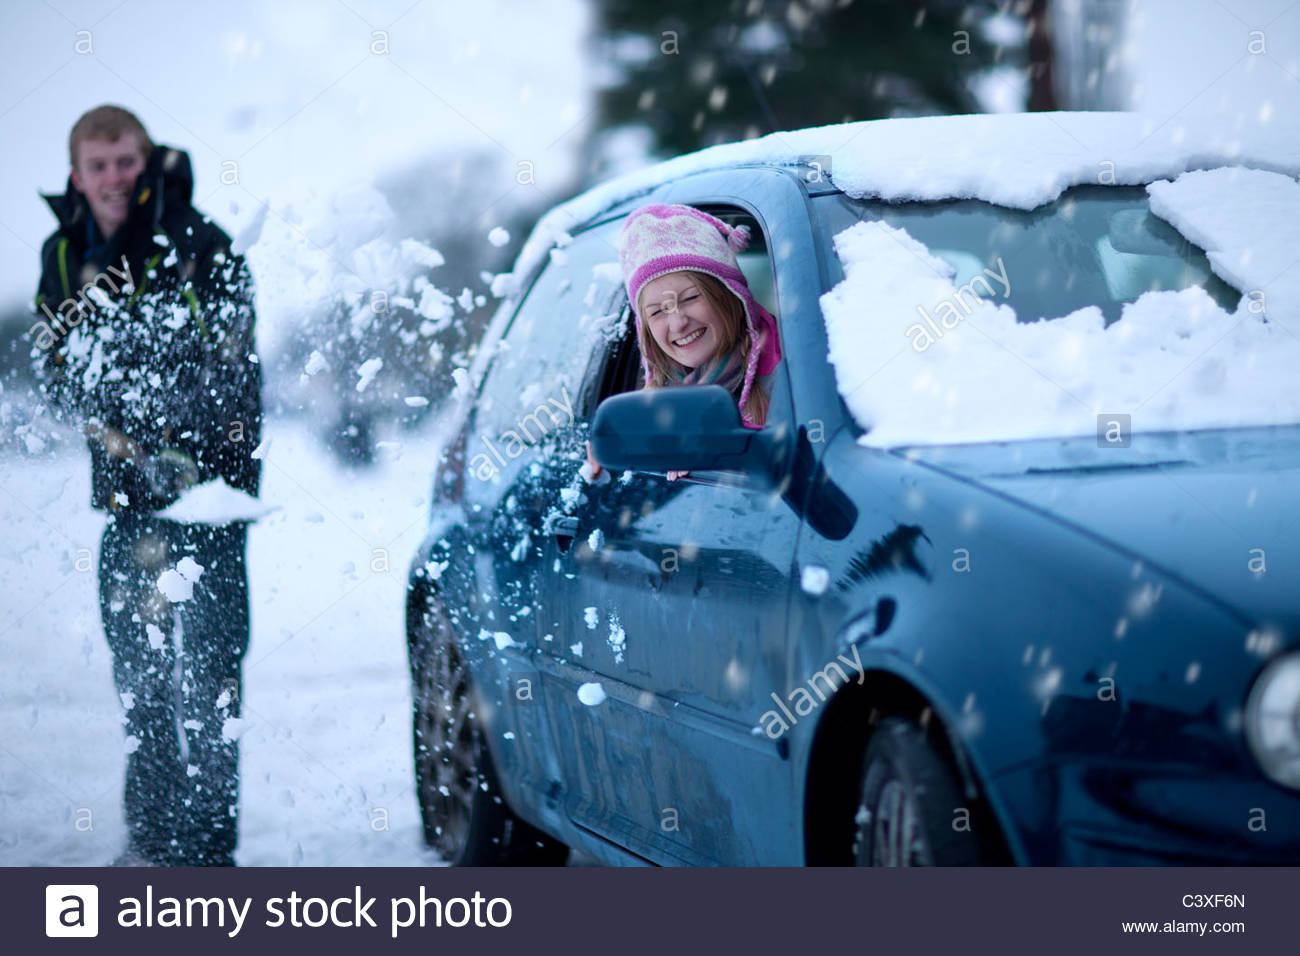 Playful man throwing snow at girlfriend sitting in car - Stock Image